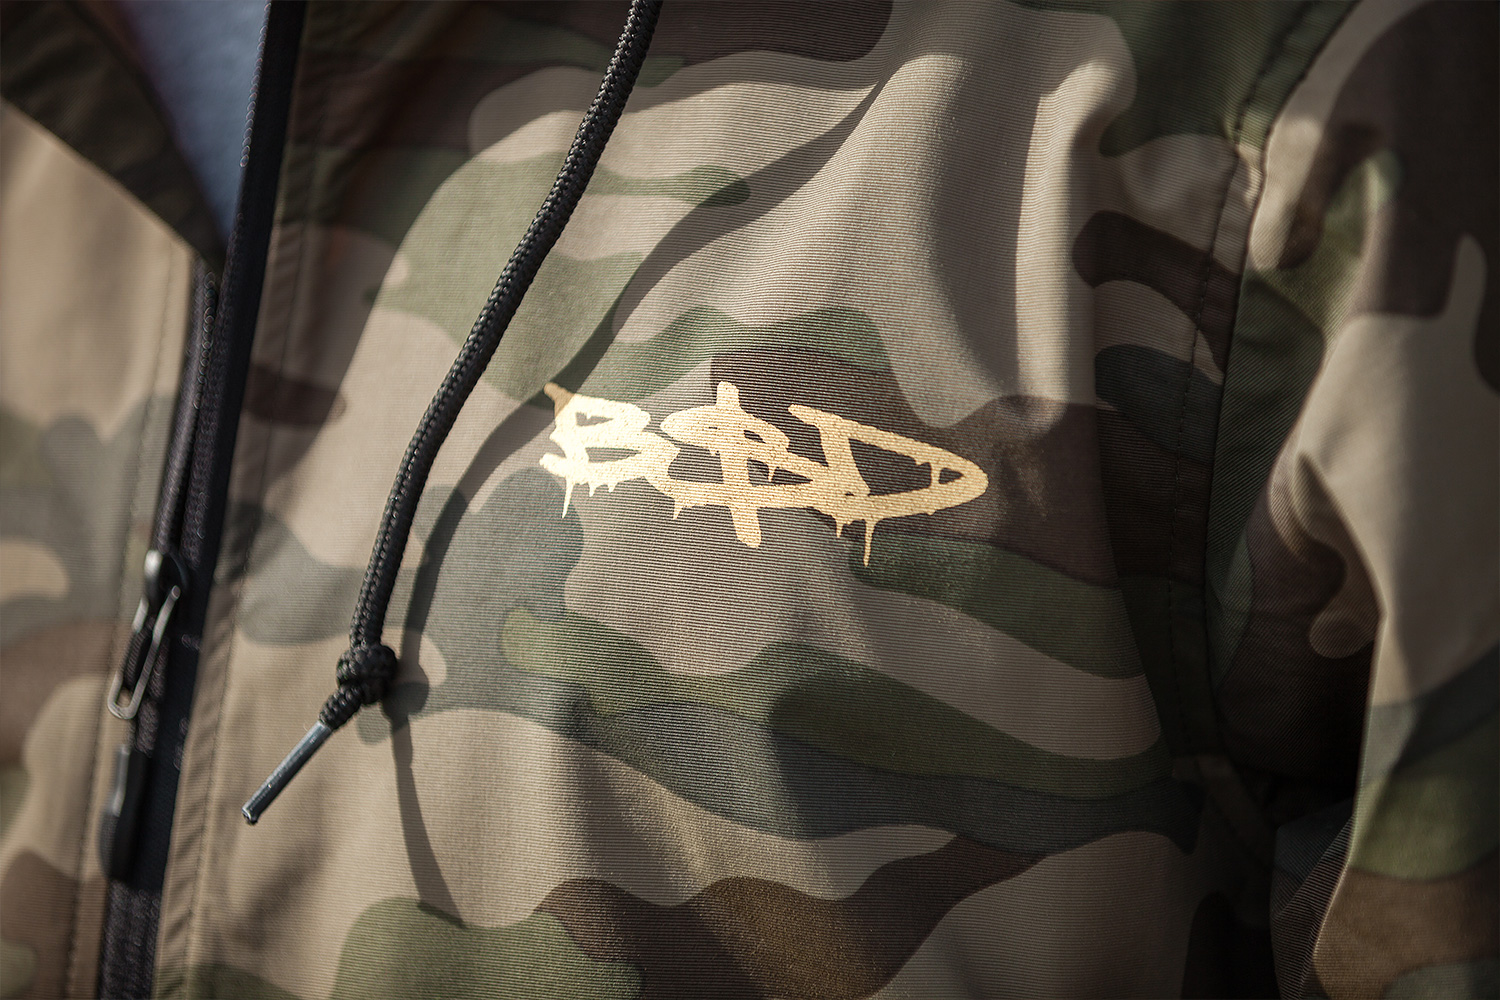 The 'Zing$' Anorak in OG camo